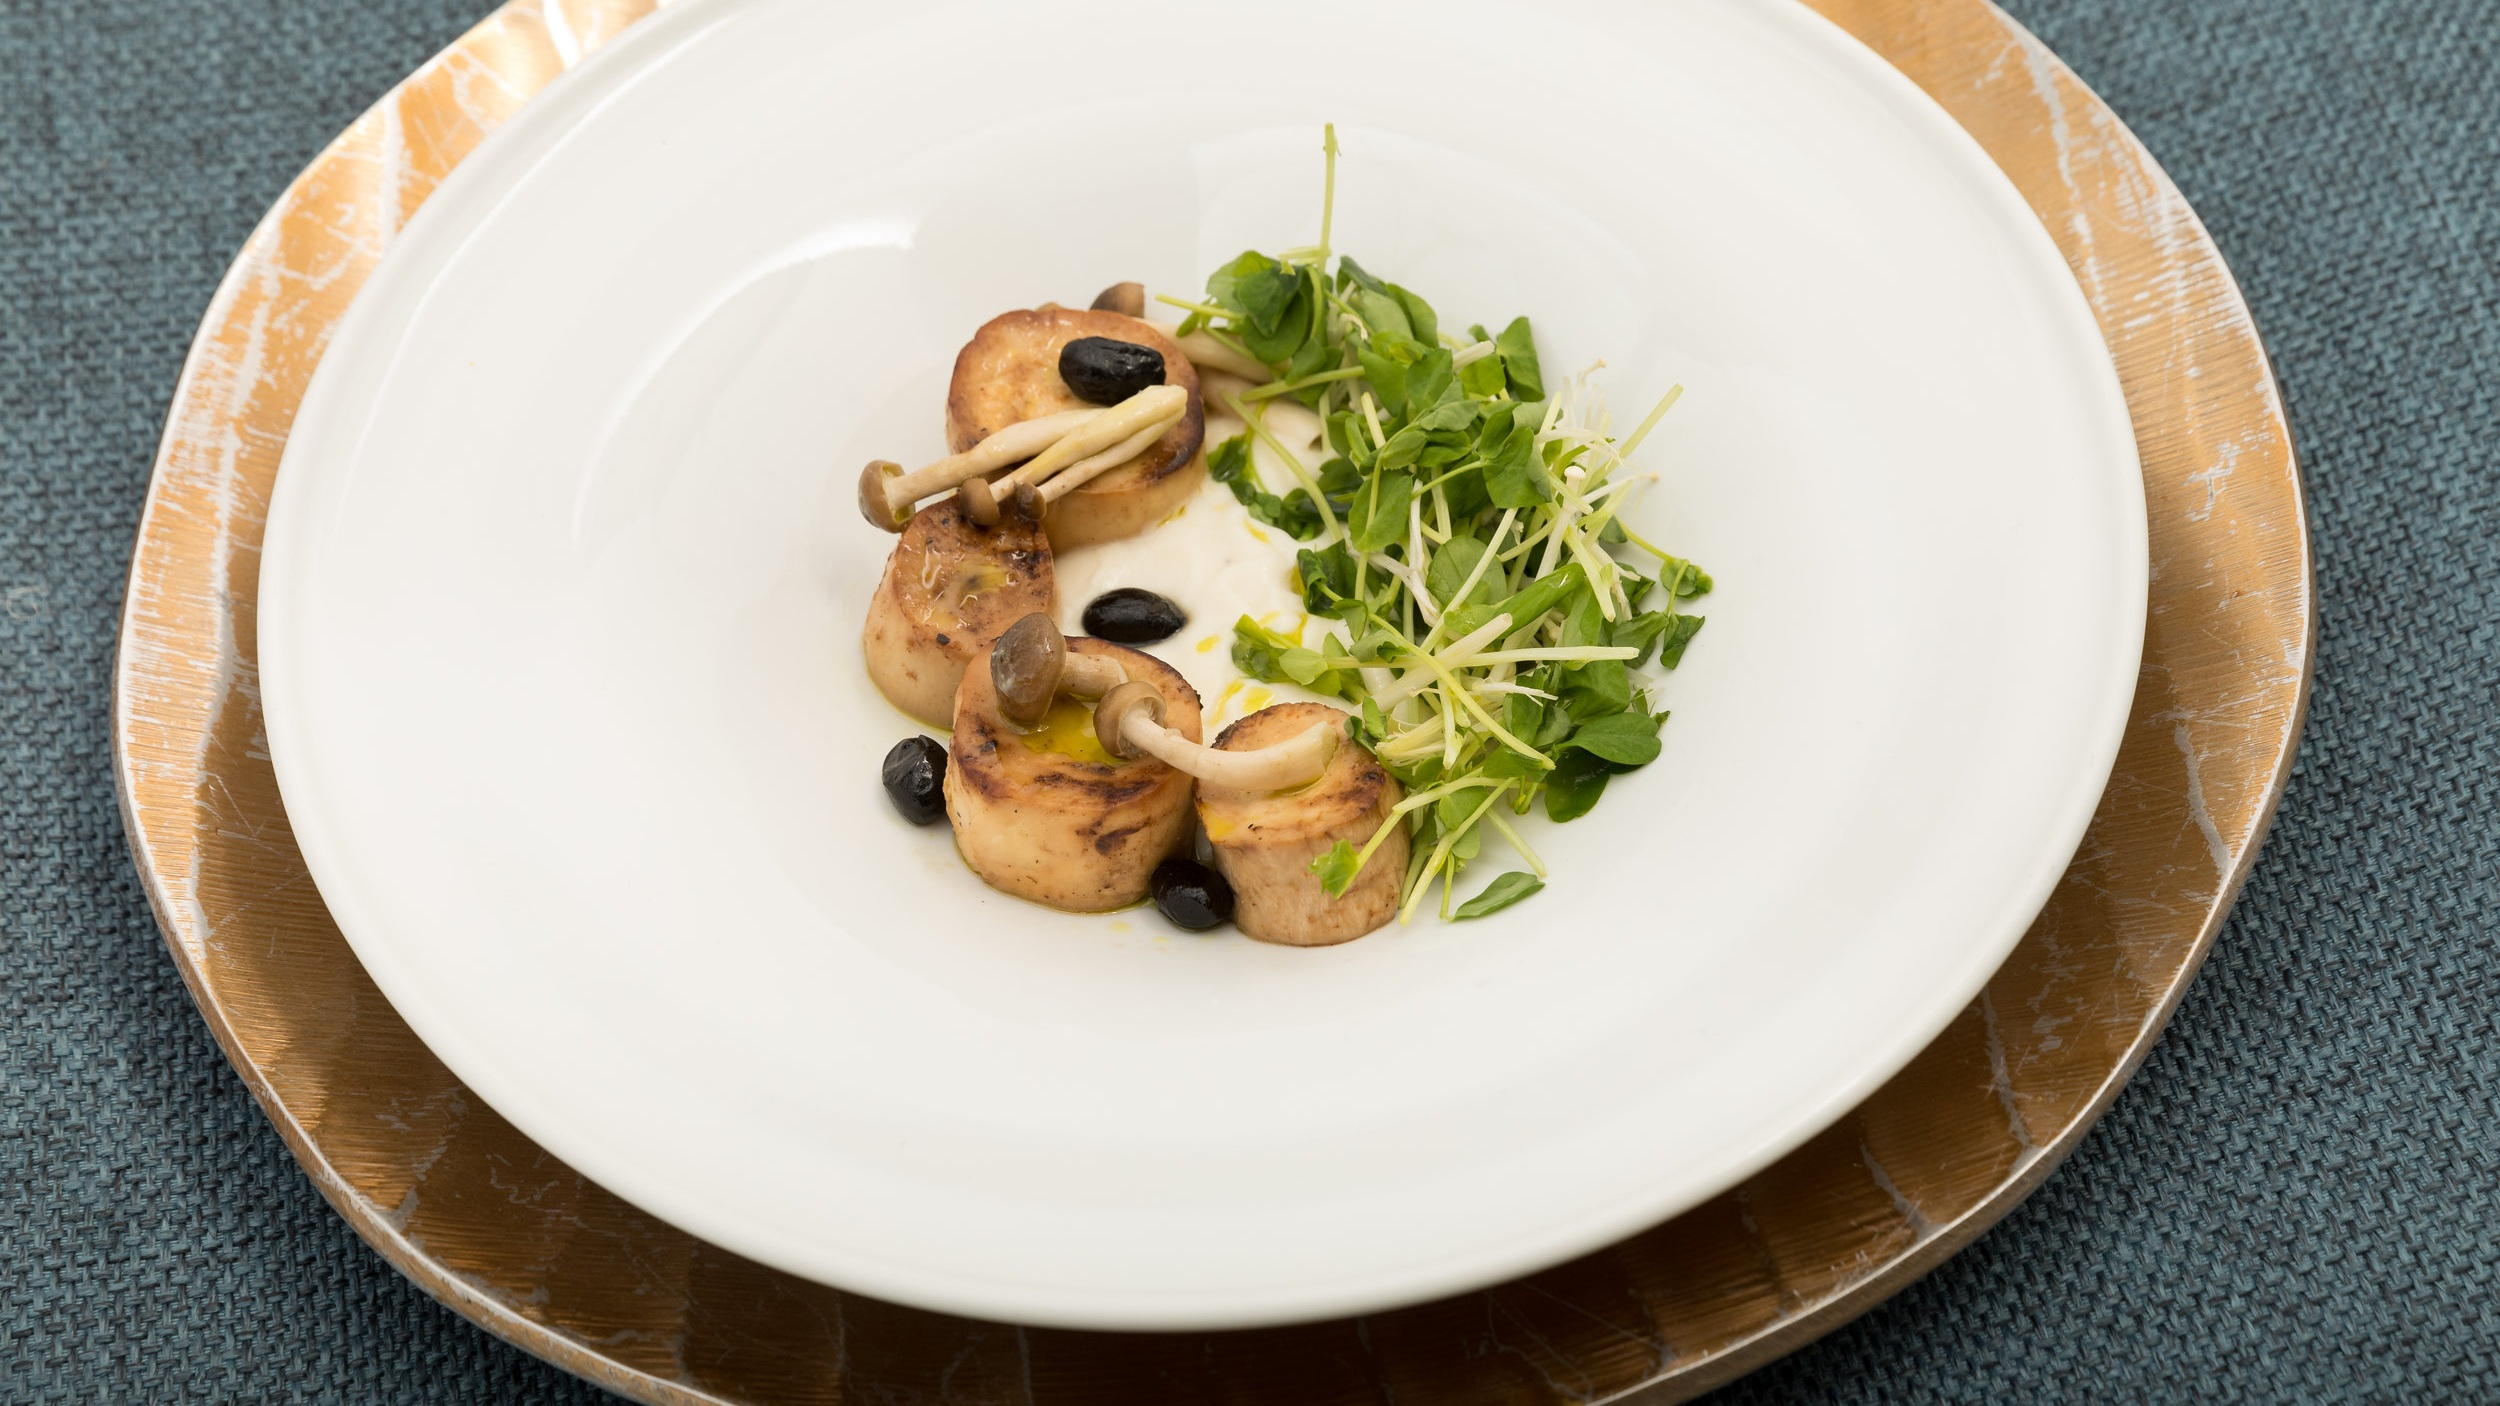 Miso Glaced King Oyster Mushroom Scallops w_Cauliflower, Lemon Veloute & Snow Peas,Pea Tendrils_Amanda Gentile5.jpg